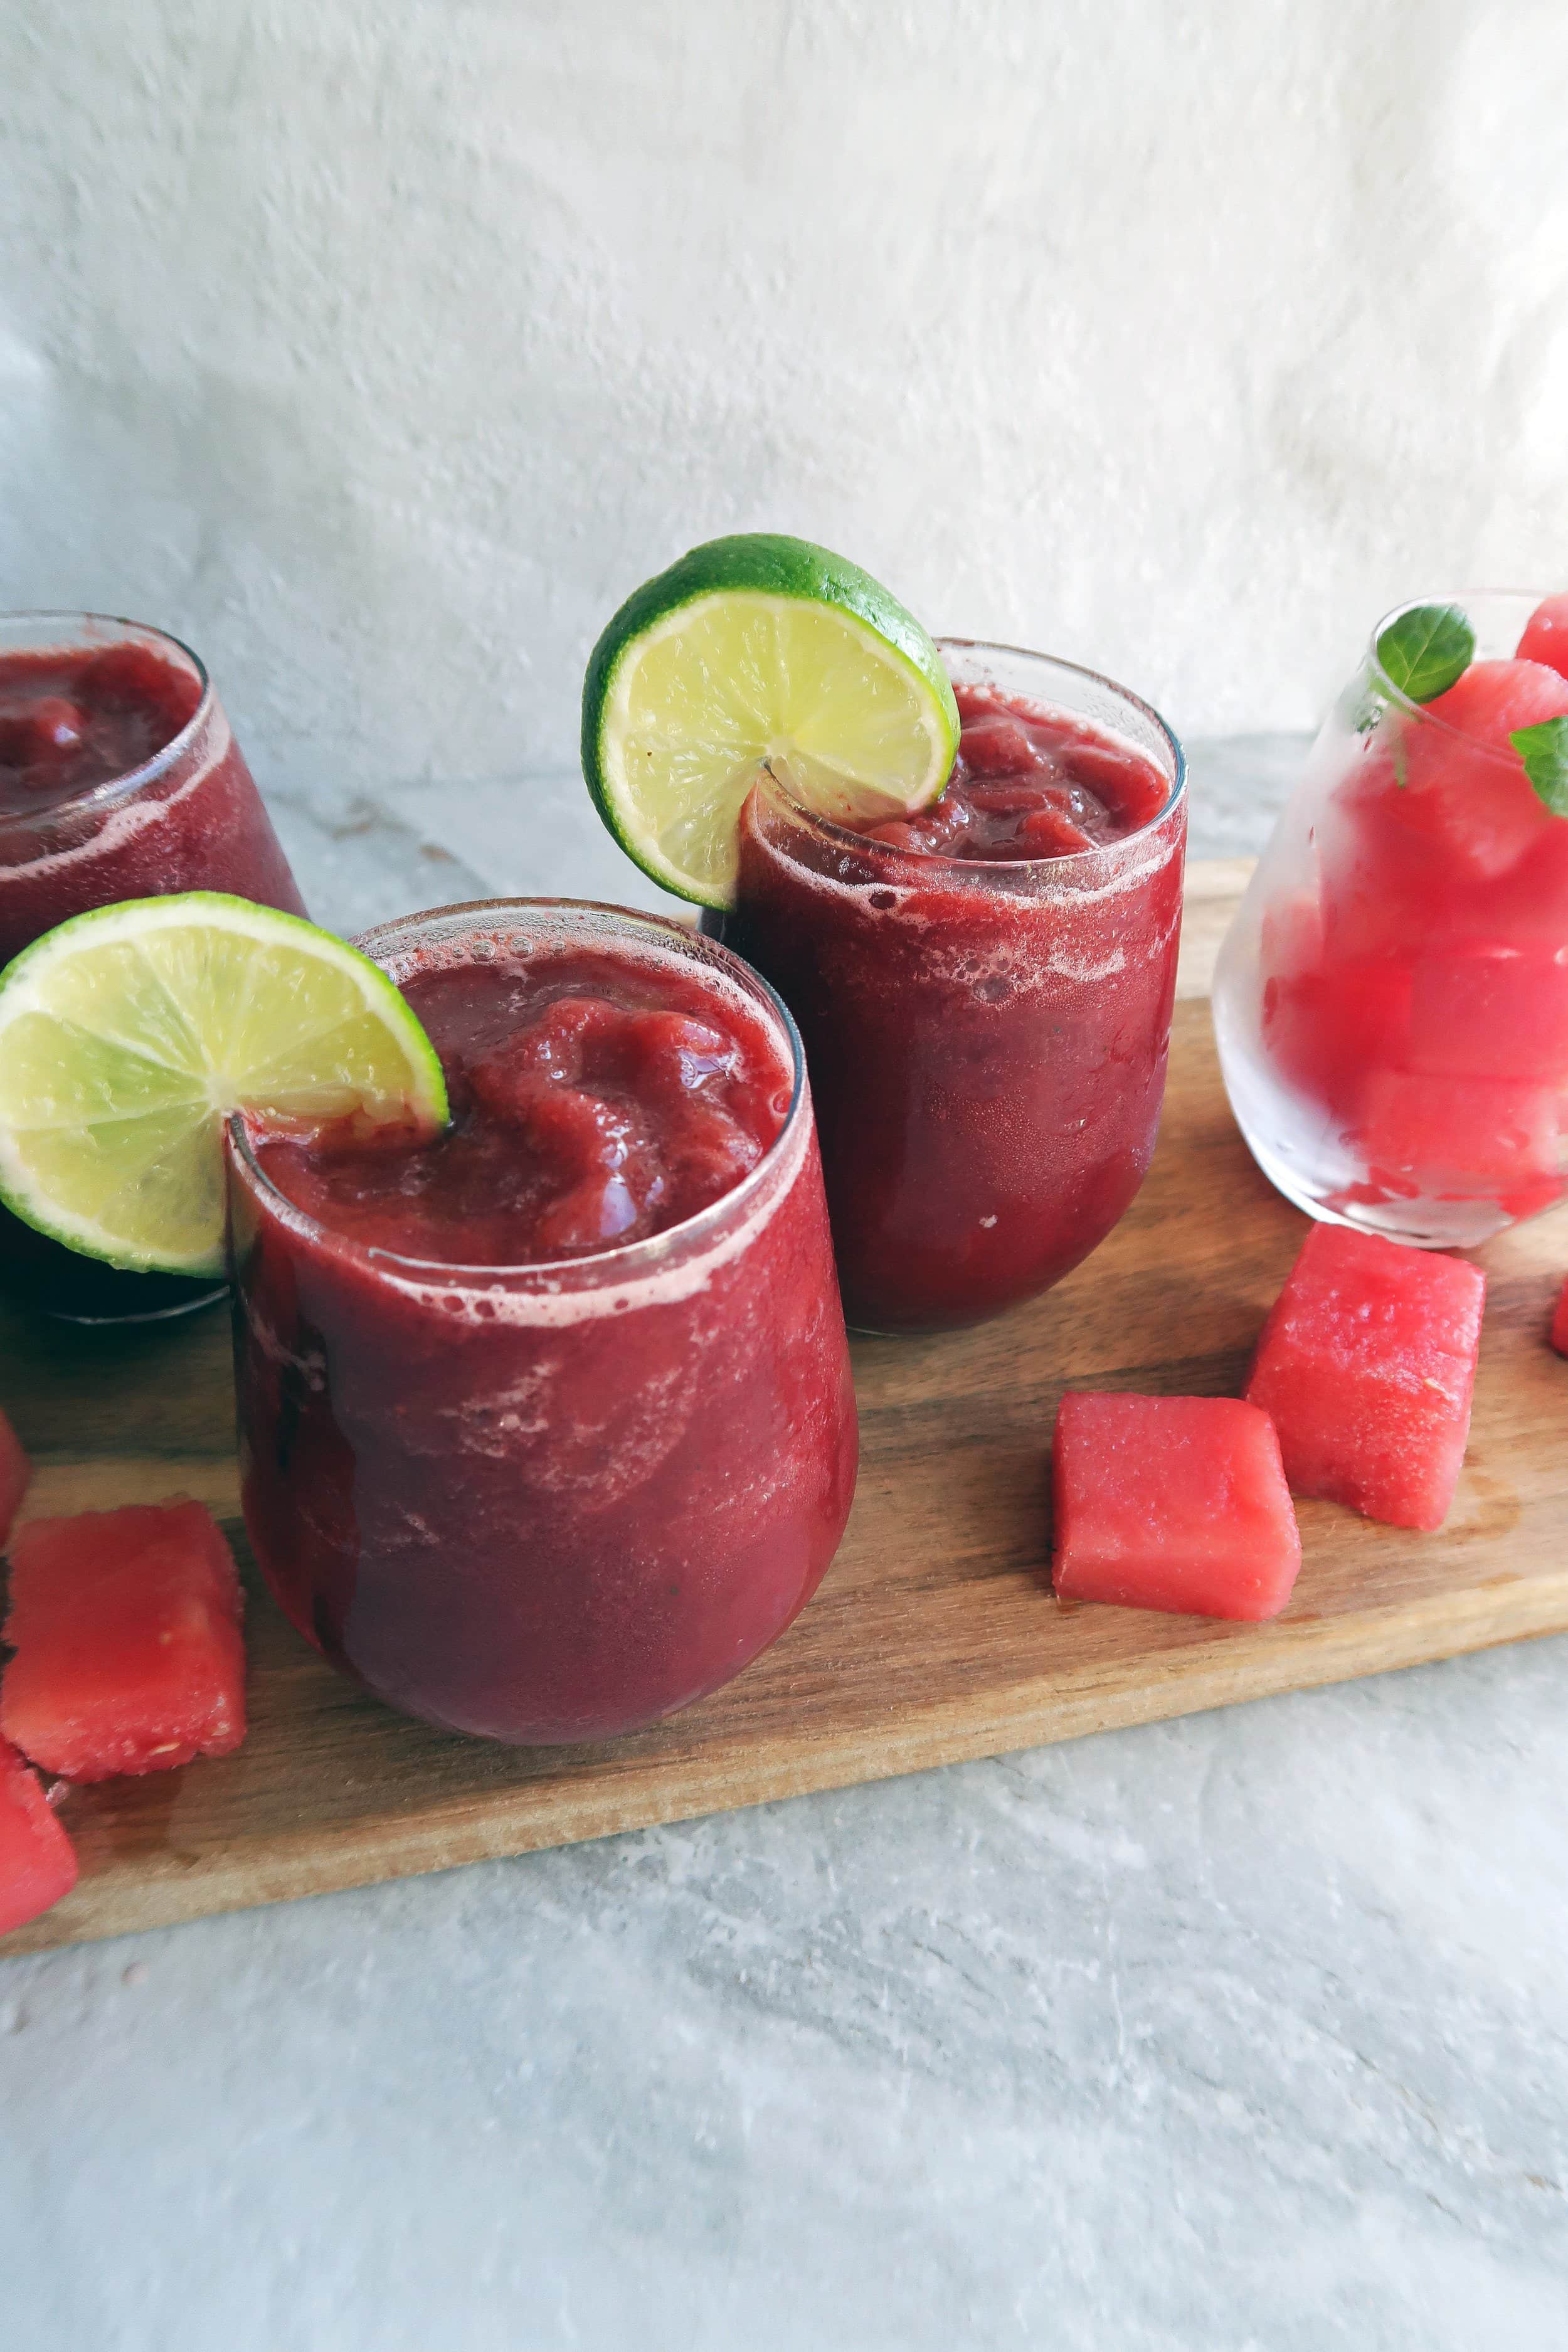 Three Watermelon Cherry Slushies in round glass cups on a wooden board with watermelon cubes around it.